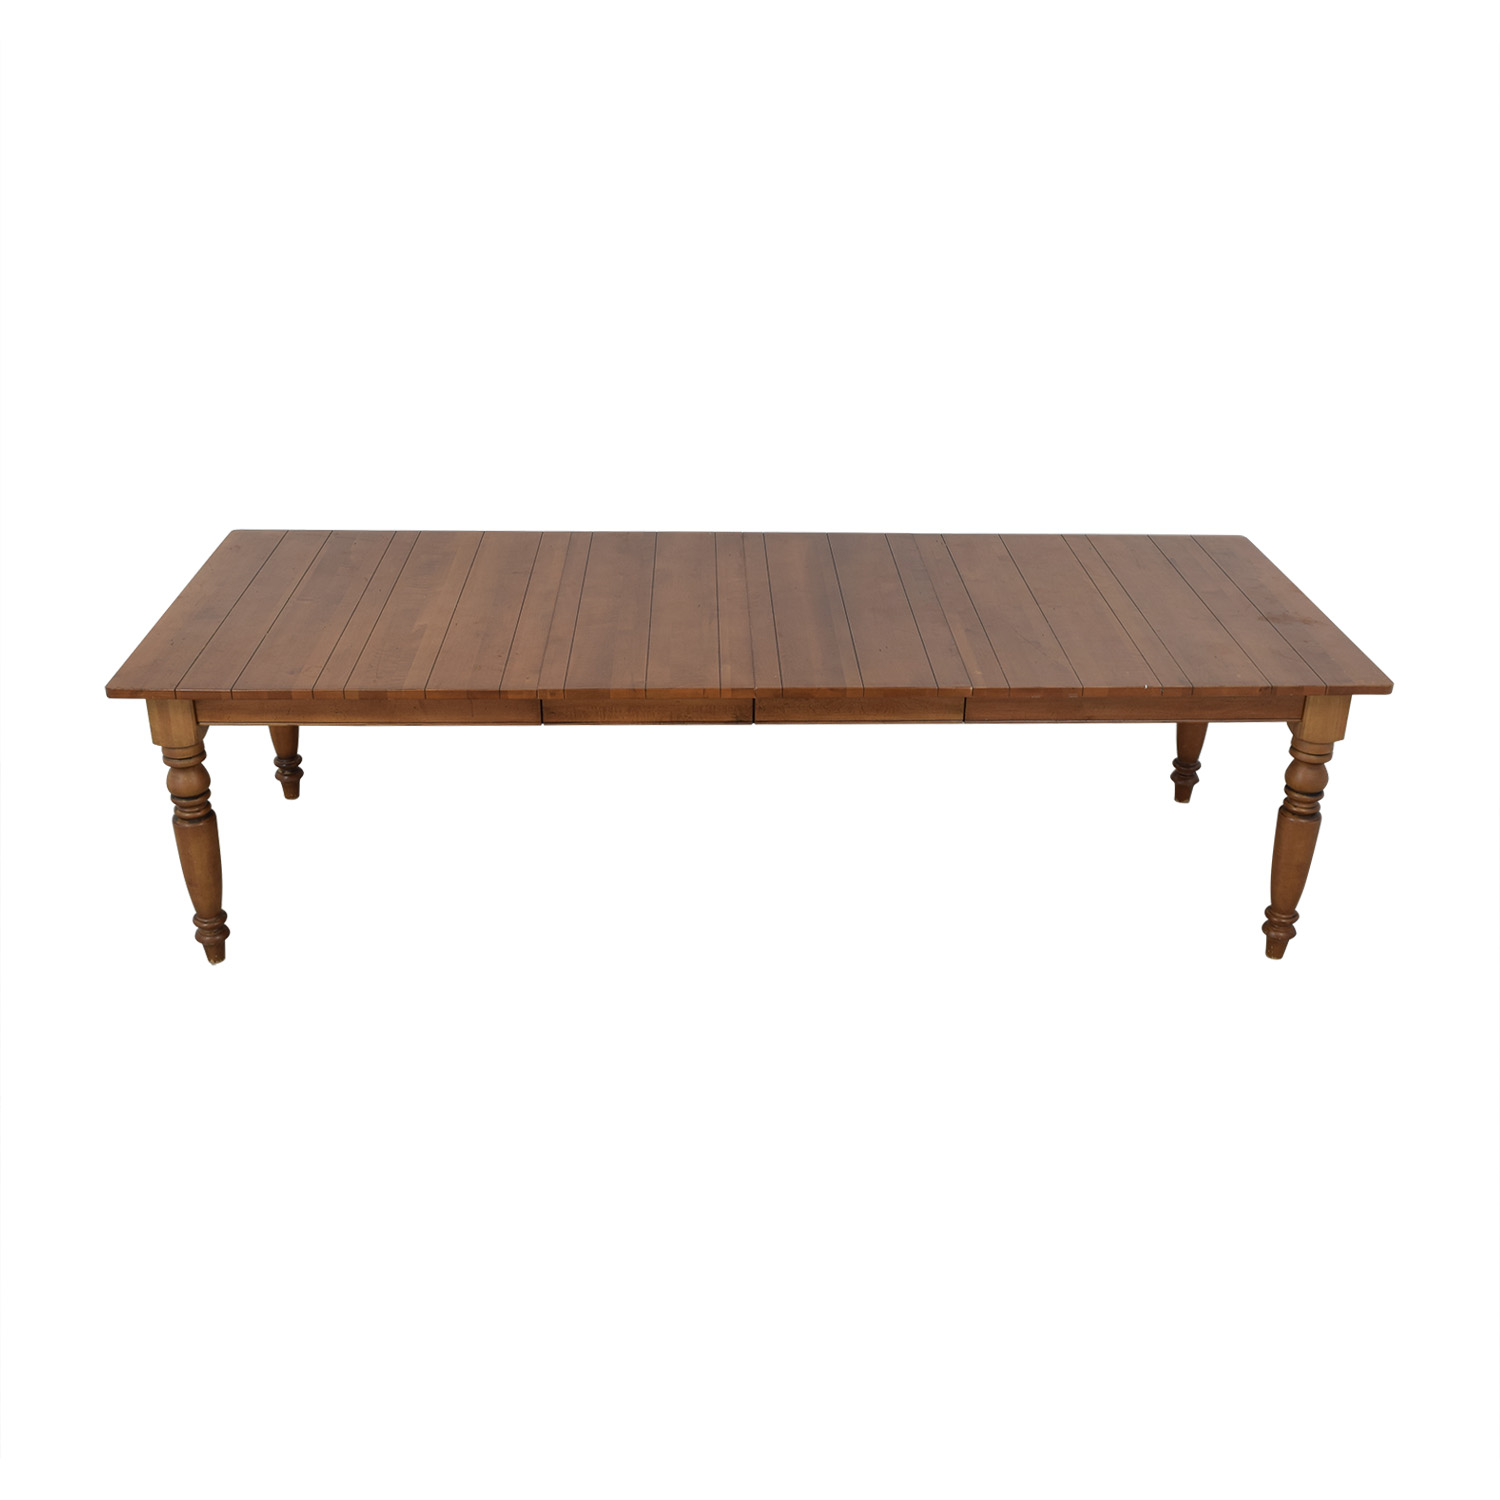 Ethan Allen Ethan Allen Miller Wood Dining Table nyc